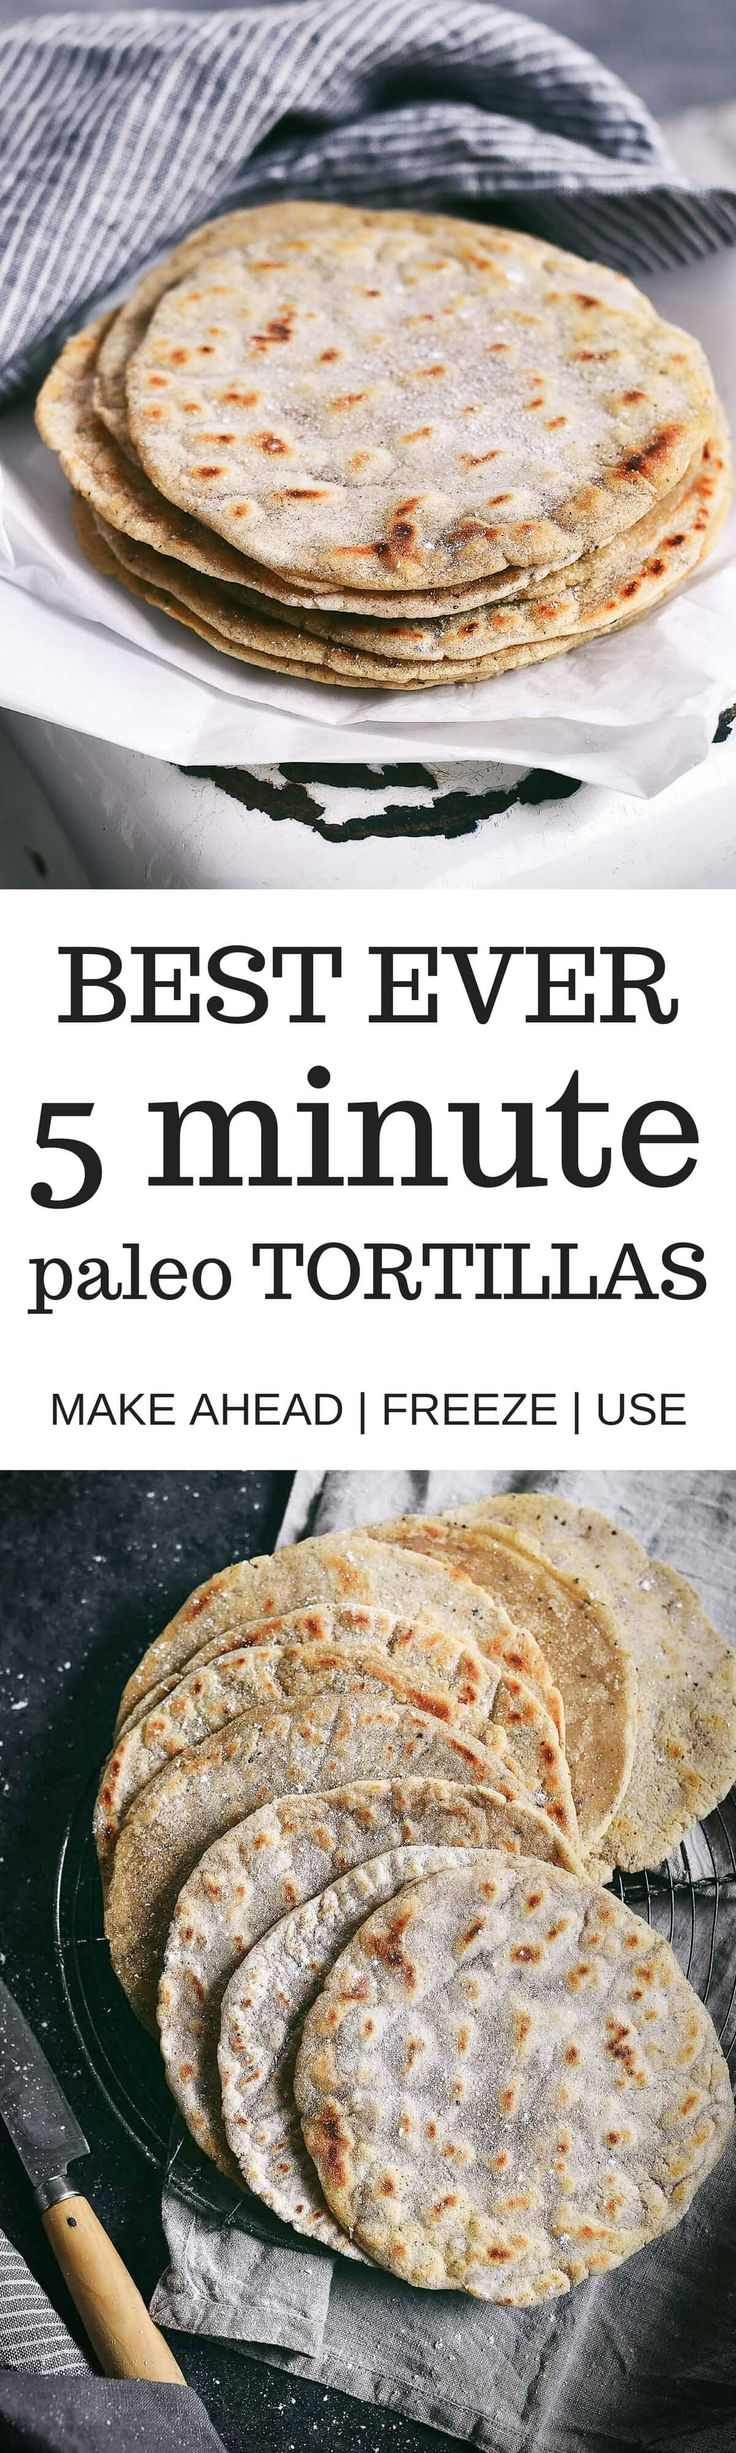 Best ever 5 minute cassava flour tortillas and several other recipes.